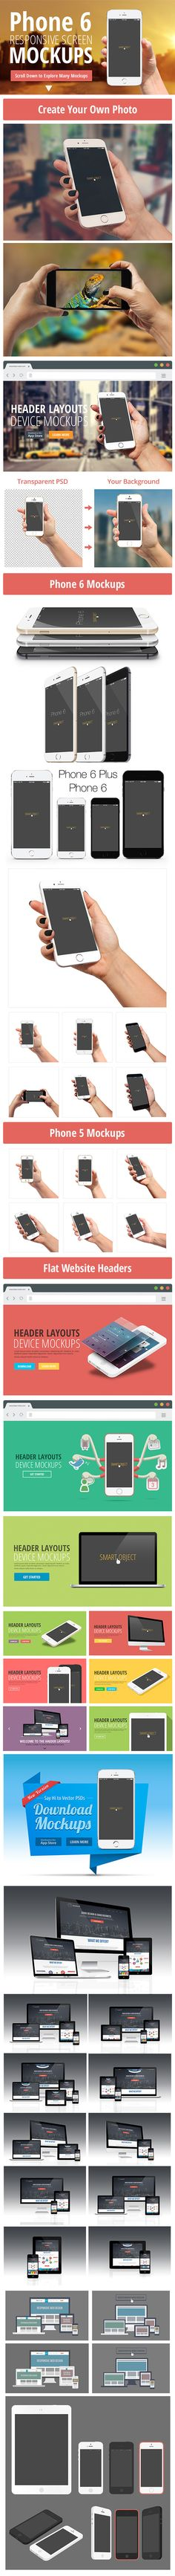 6 poster design photo mockups 57079 - Psd Iphone 6 And Responsive Screen Mockups On Behance